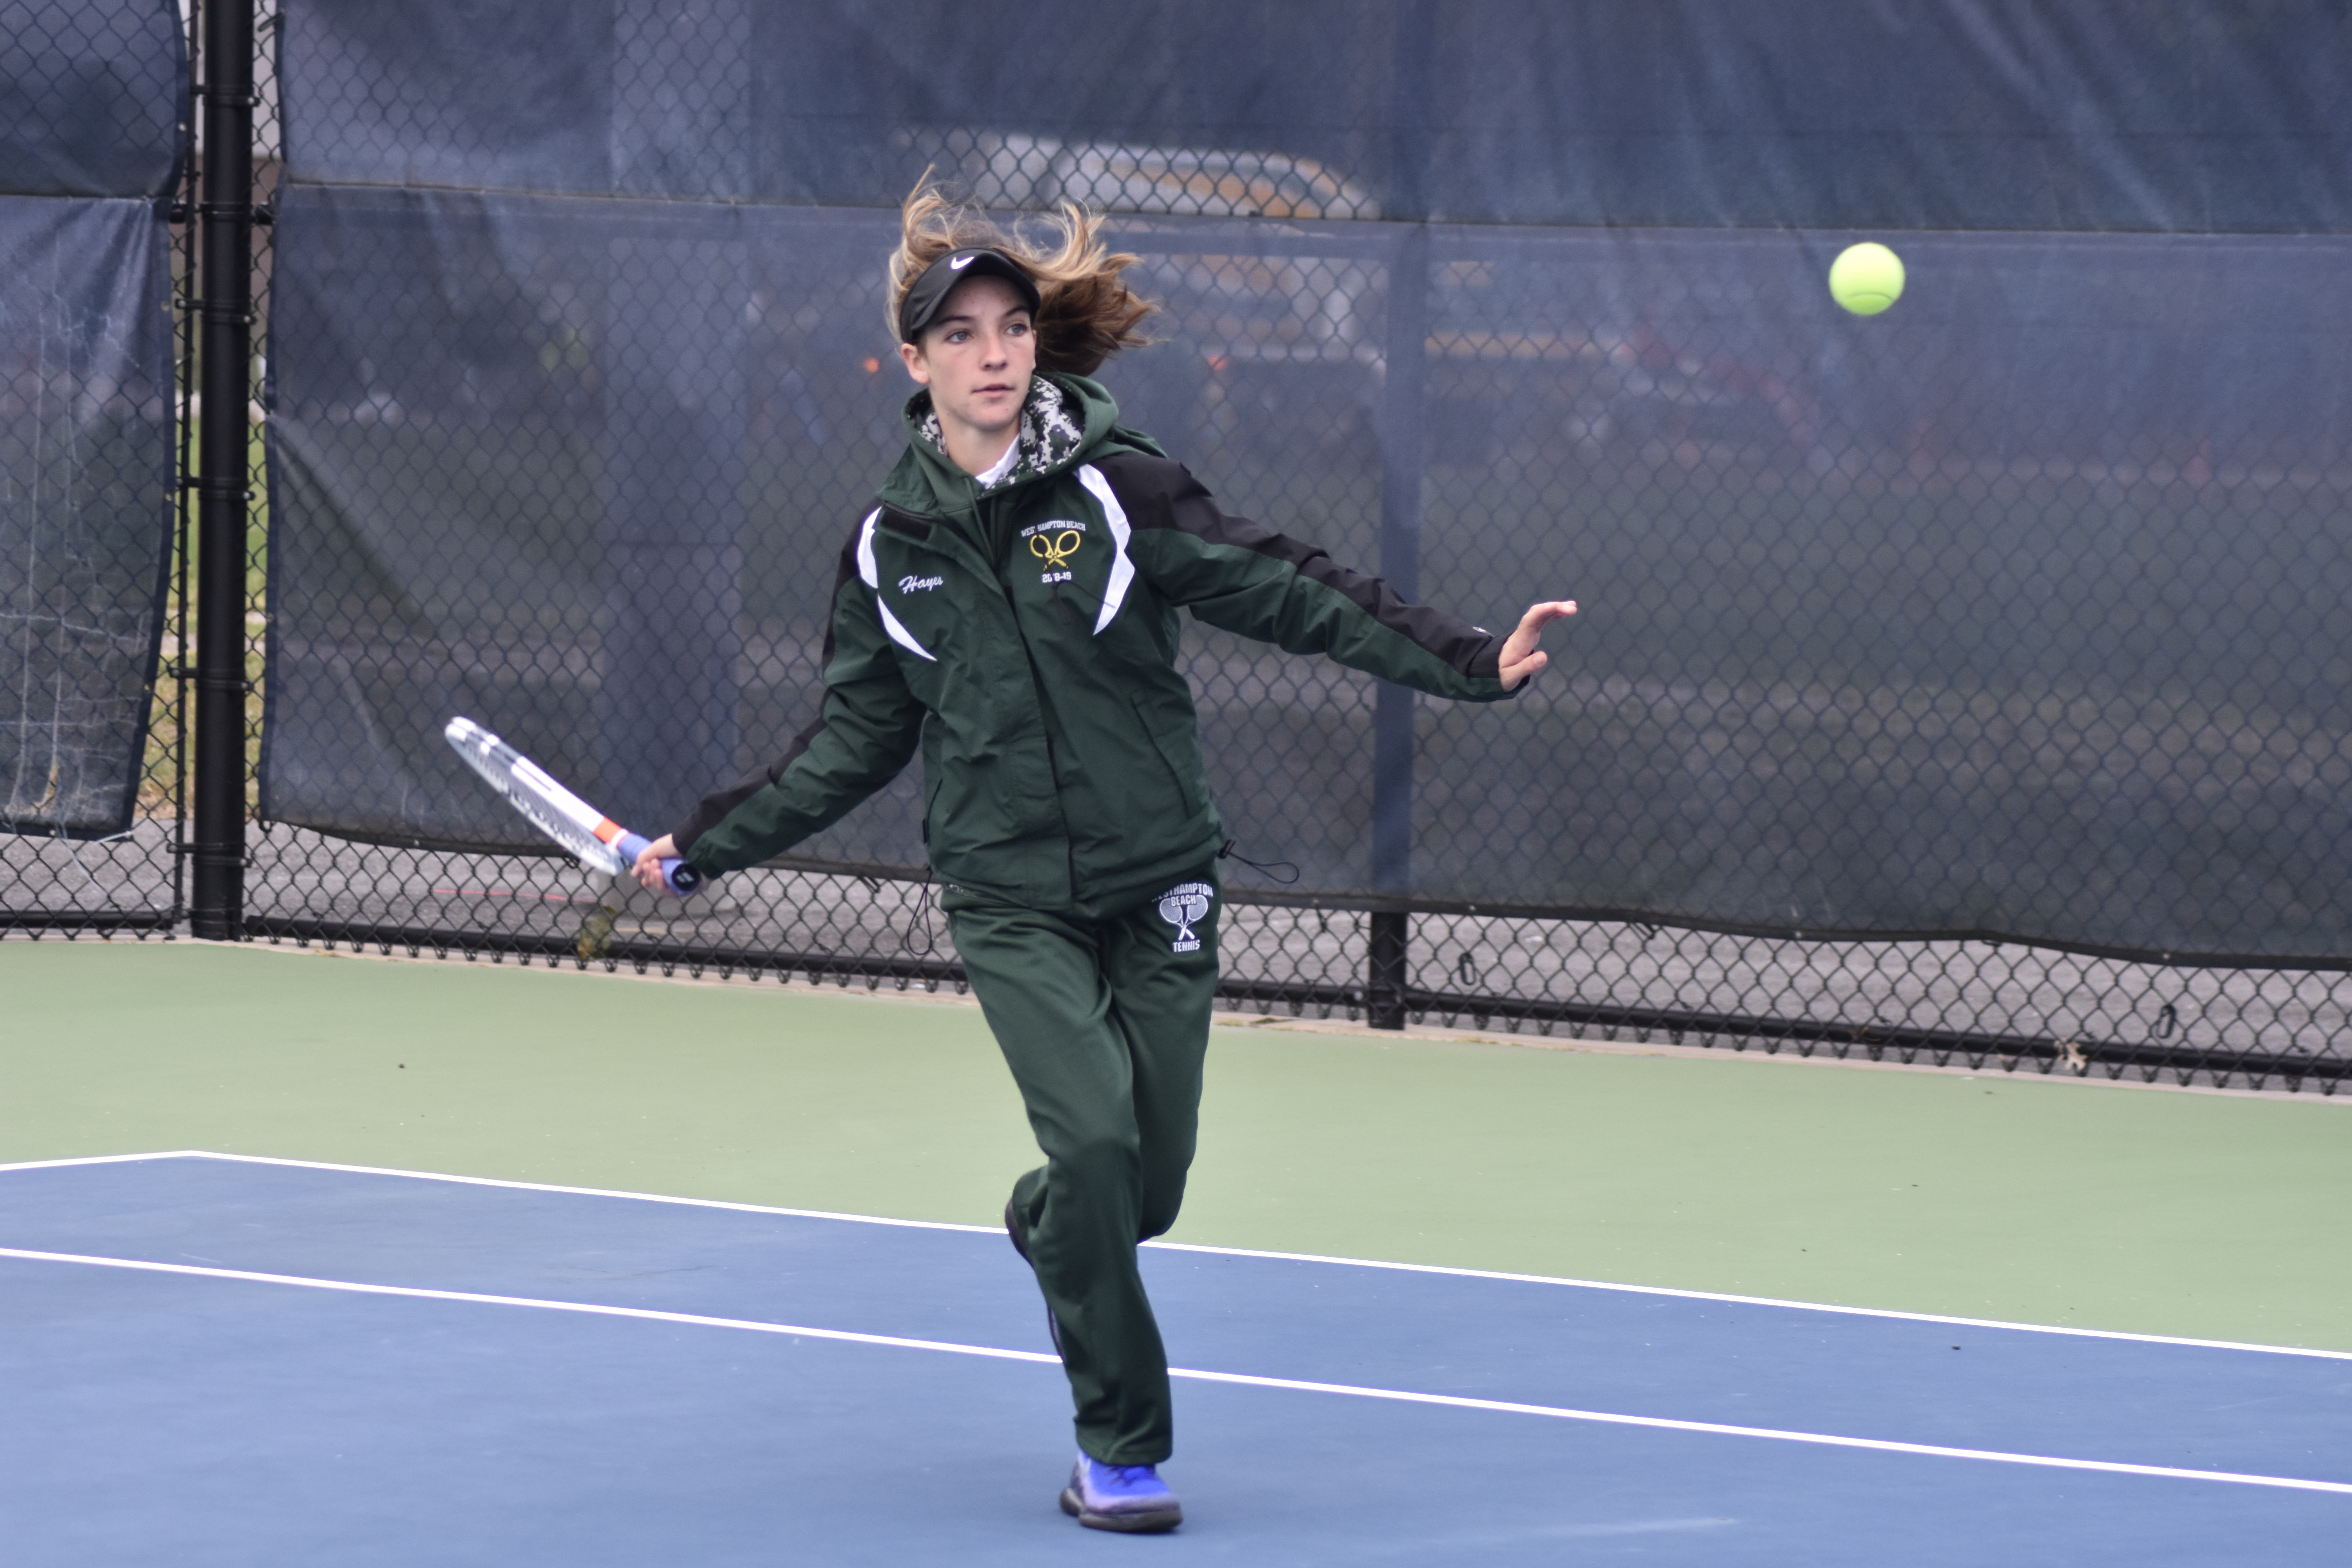 Westhampton Beach sophomore Rose Hayes won the Division IV singles title for the third consecutive year.